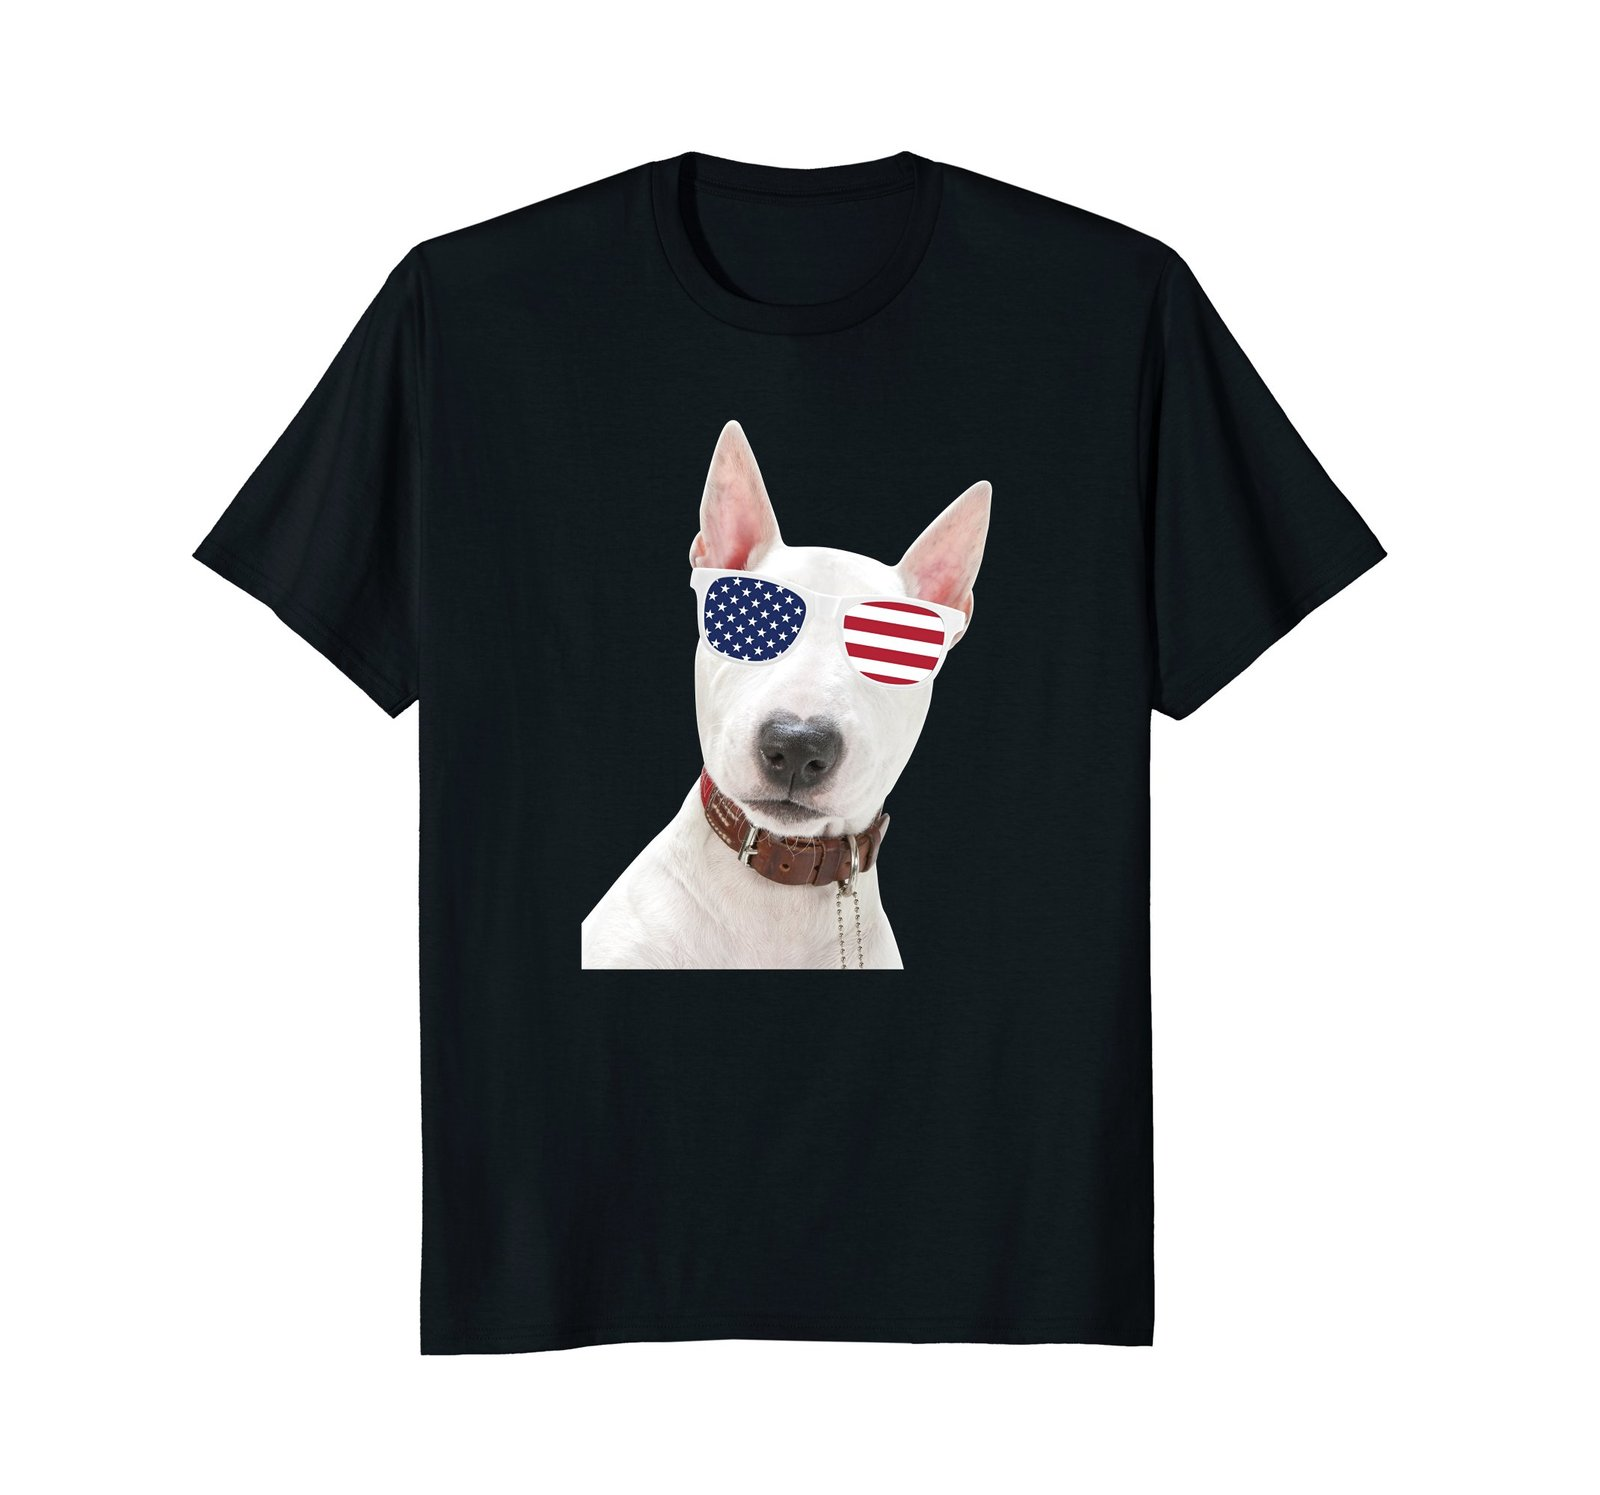 Bull Terrier Wearing Sunglasses 4th Of July Dog T-Shirt